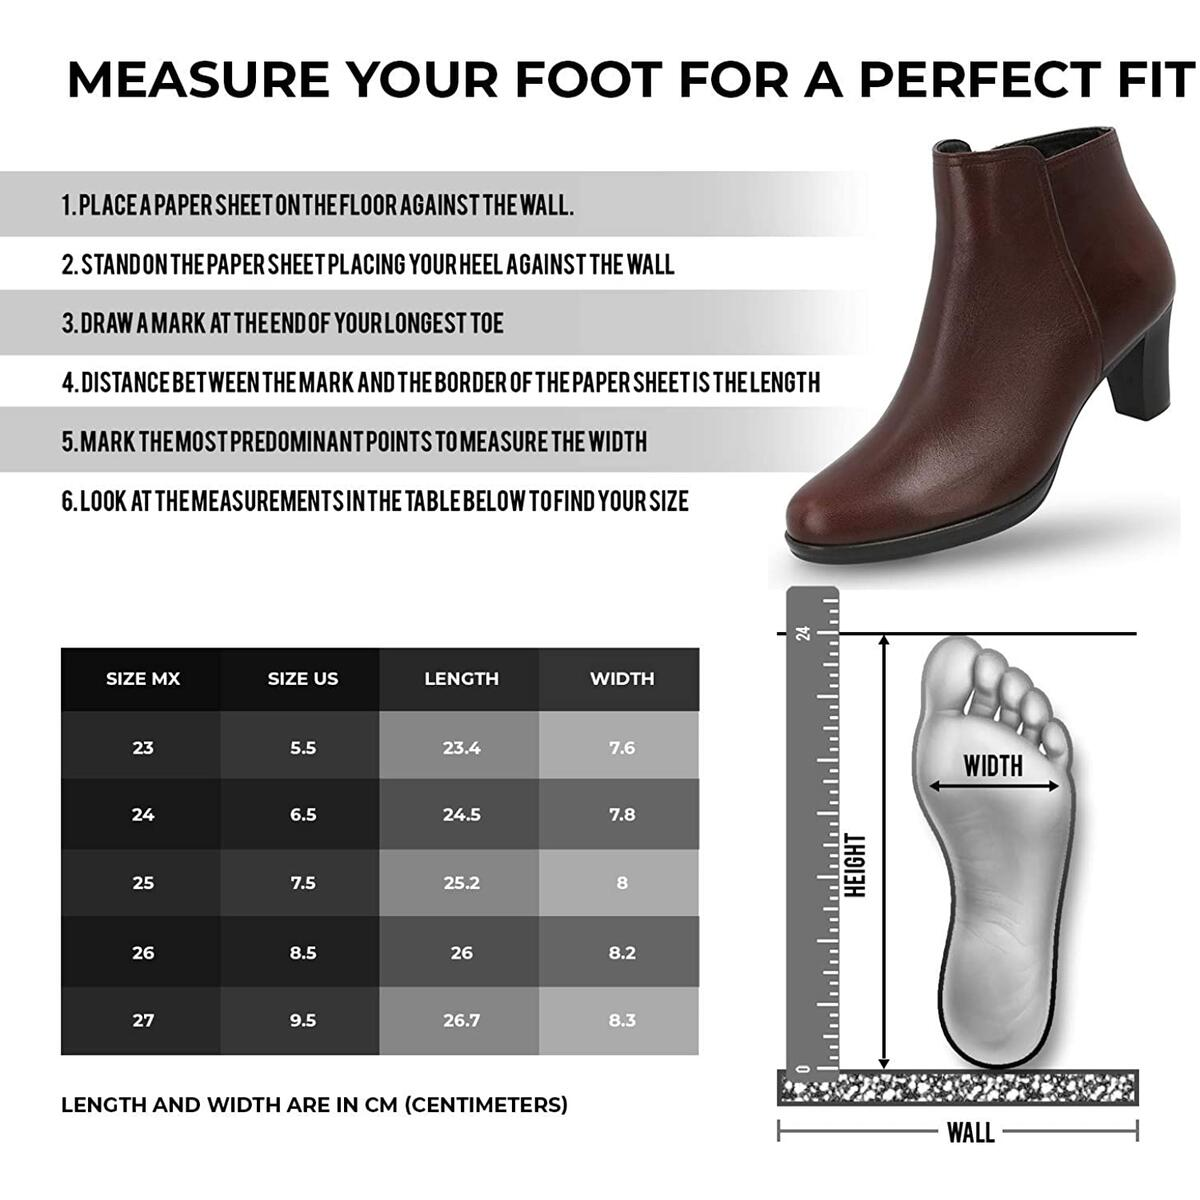 MANET Leather Booties for Women - Women's Heeled Ankle Boots Classic Bootie with Heel - Maya Boot (Color Brown only, all sizes).